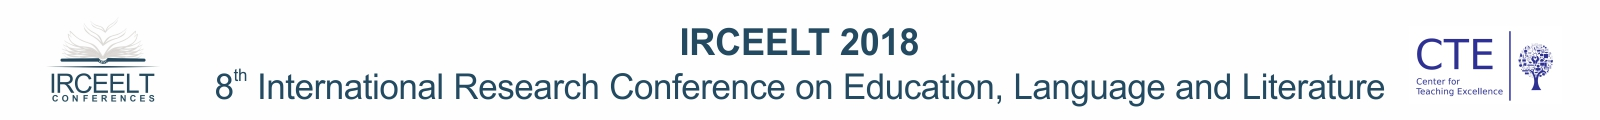 IRCEELT Conferences